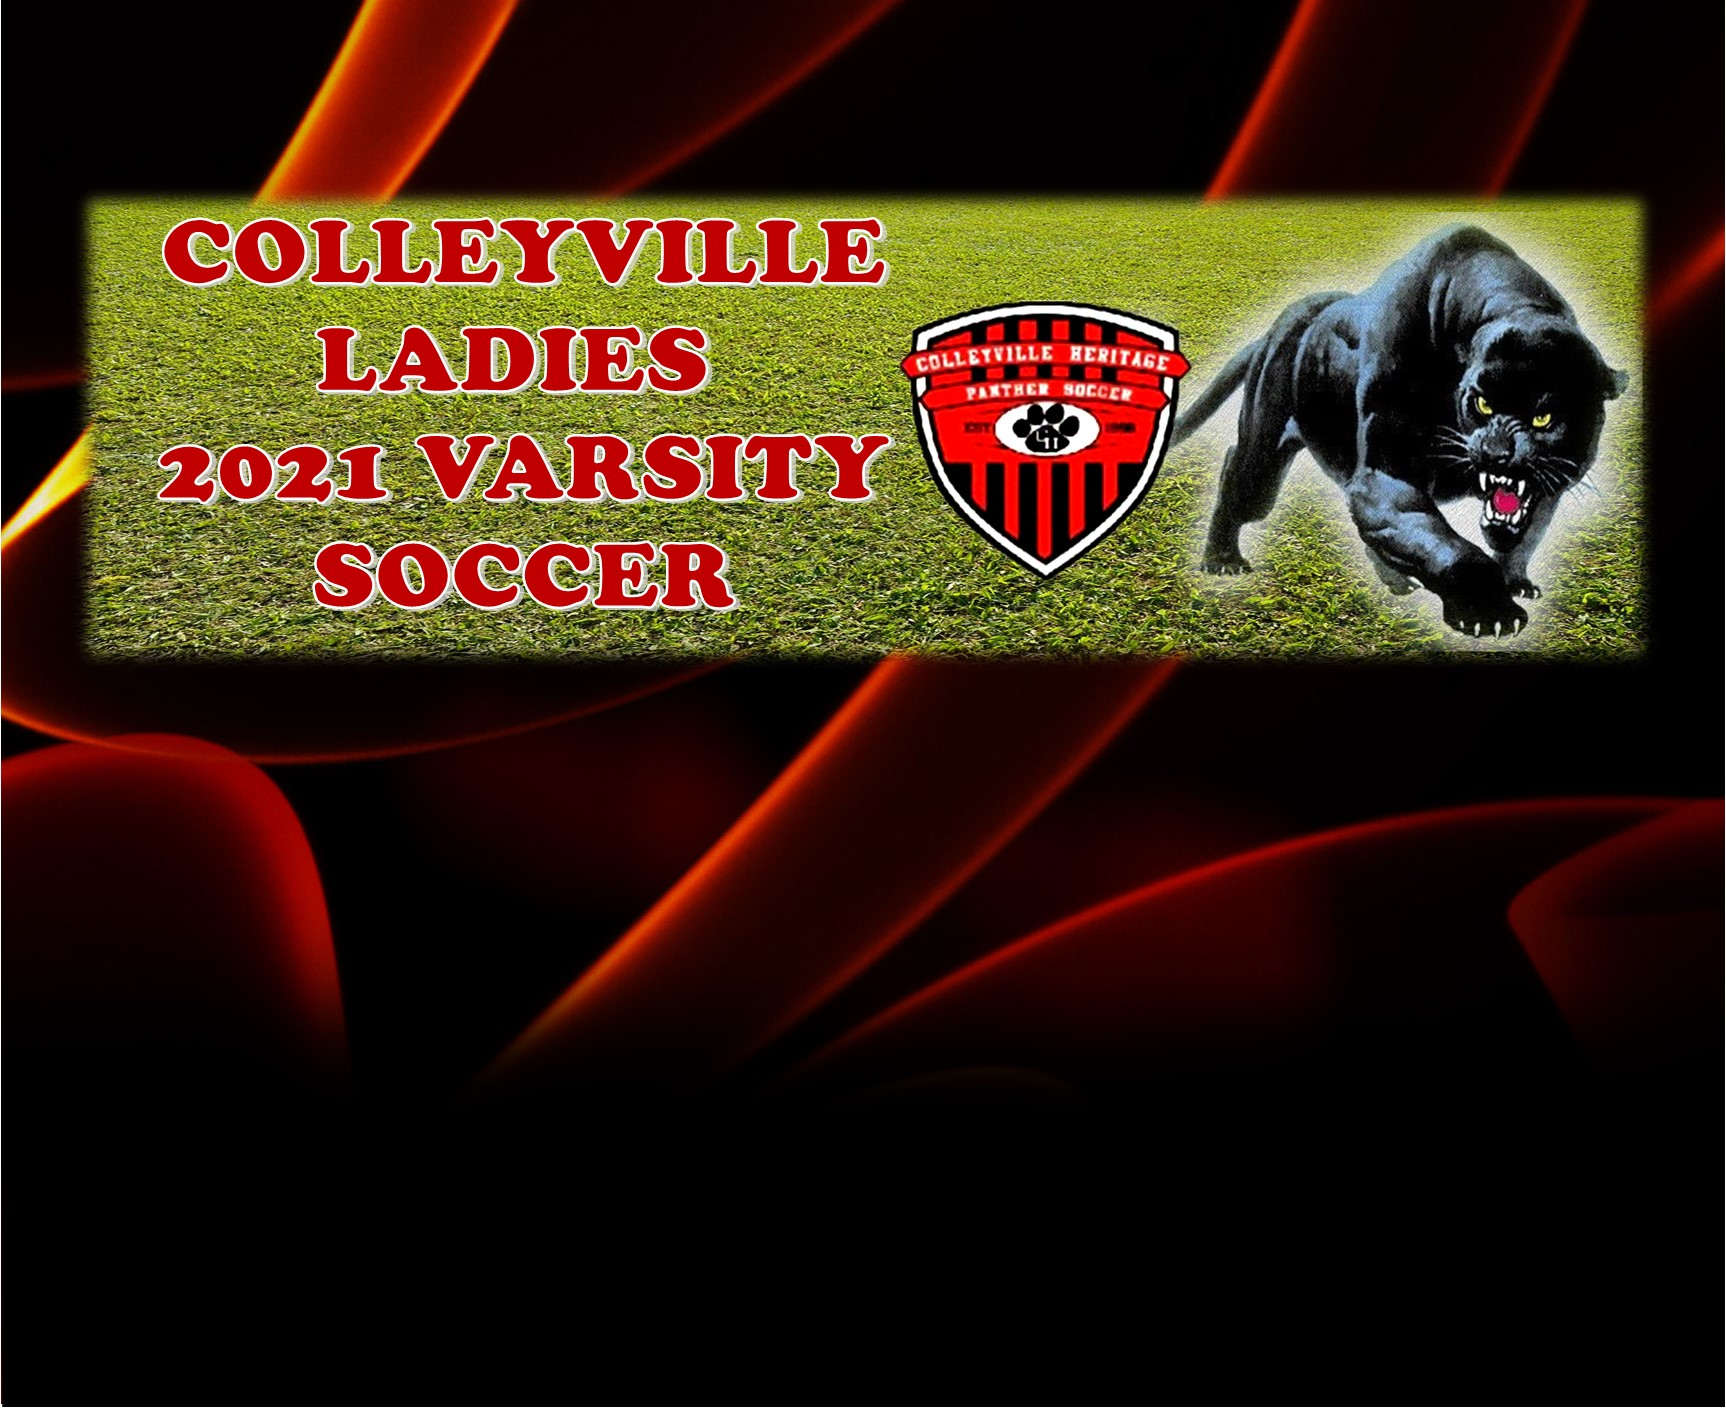 GCISD Ladies Soccer: Colleyville Panthers Lose Heartbreaker to Burleson Centennial Spartans 1-0